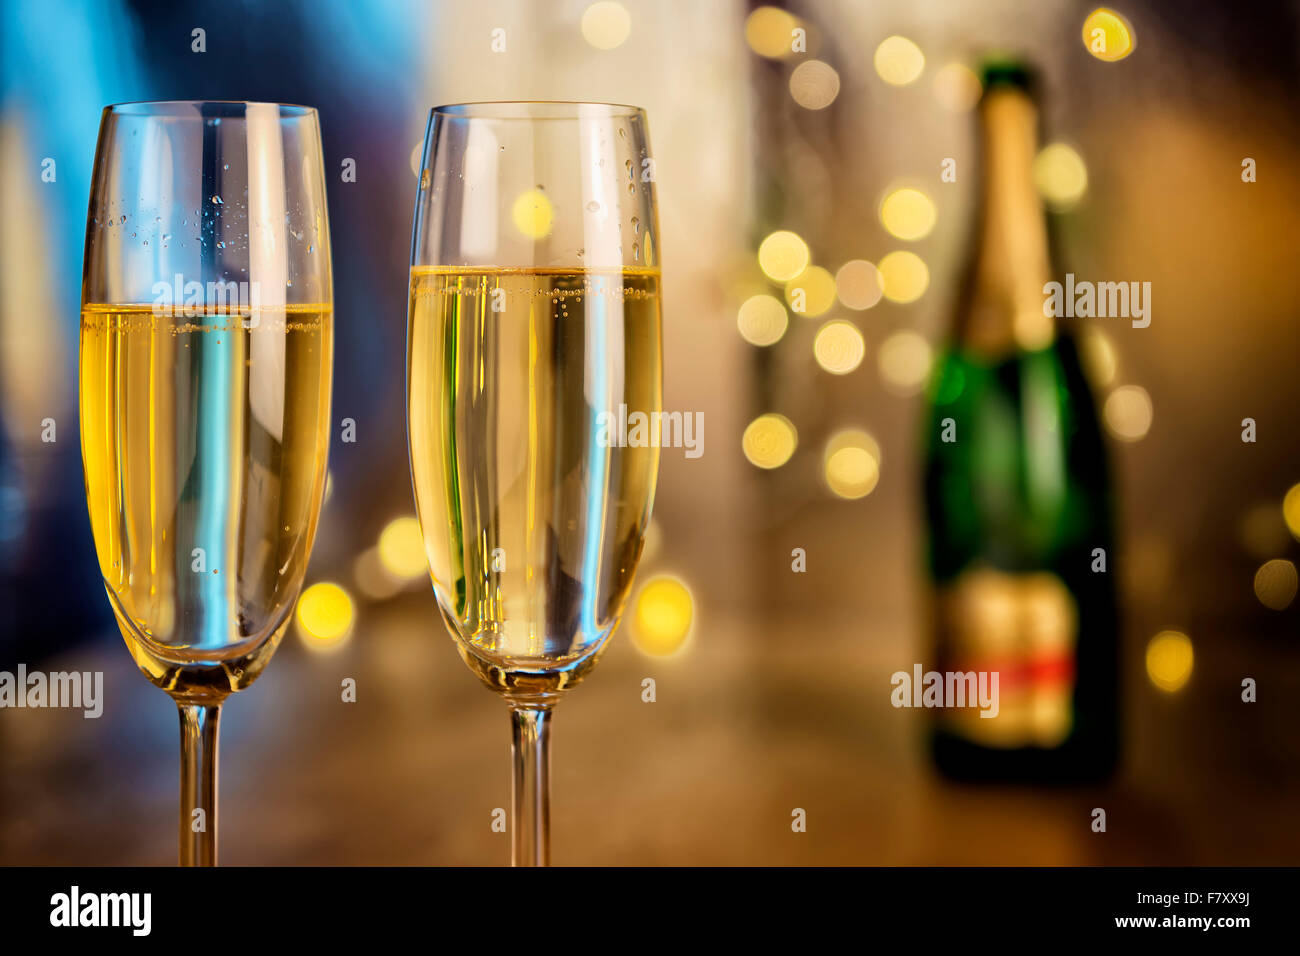 Image of two champagne glasses with bottle and blur lights in background Stock Photo